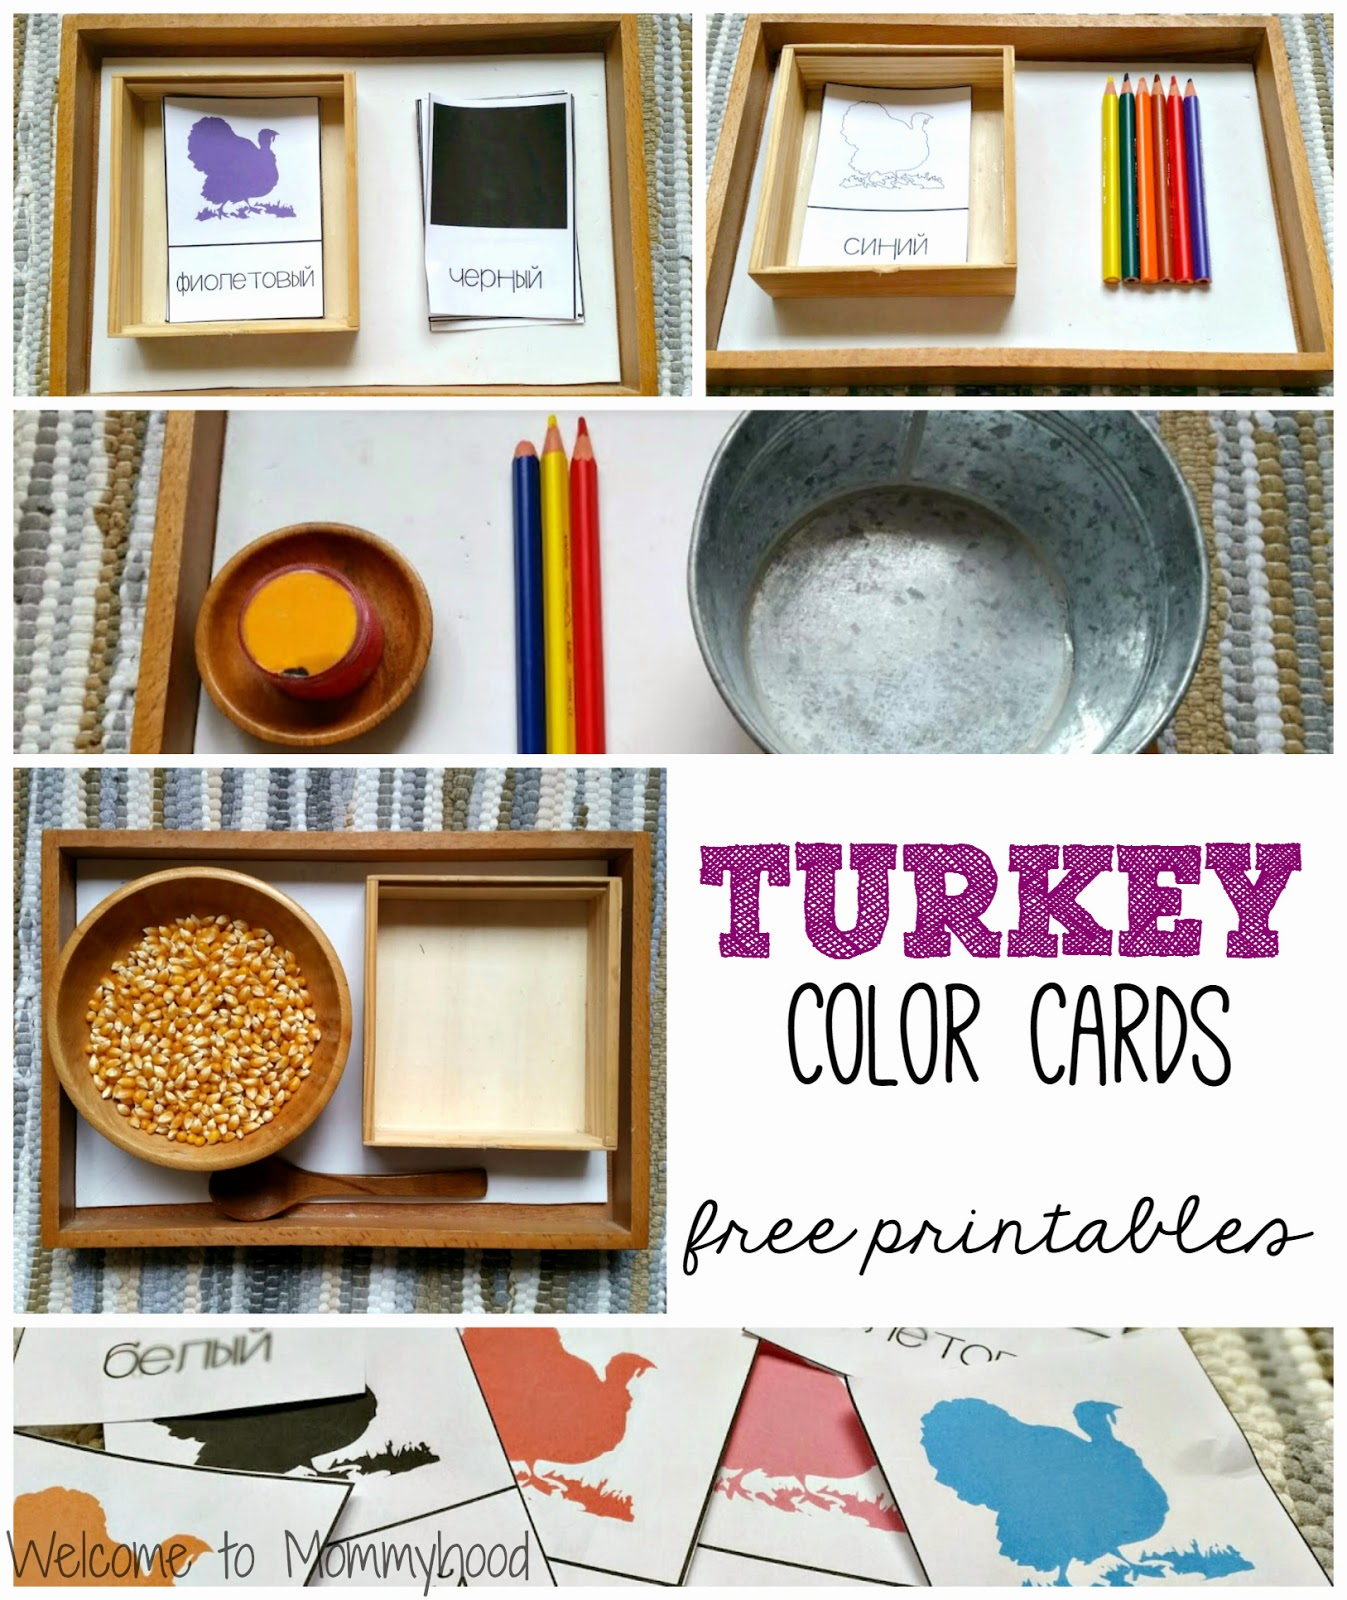 Color cards free - Thanksgiving Inspired Color Activities For Toddlers And Preschoolers Welcome To Mommyhood Coloractivitiesfortoddlers